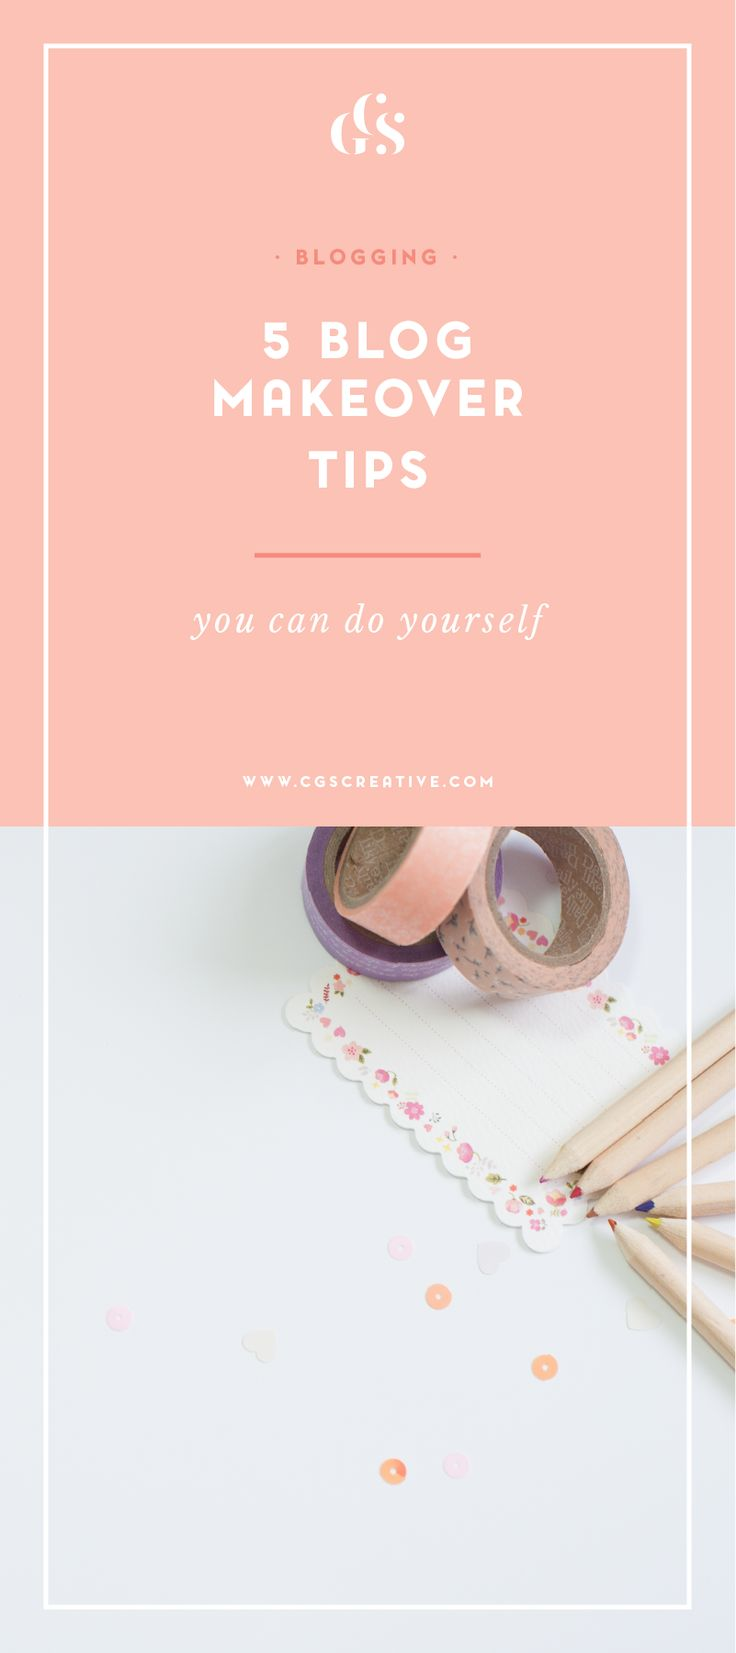 5 blog makeover tips - tips for making your blog look better and attract the right audience for you